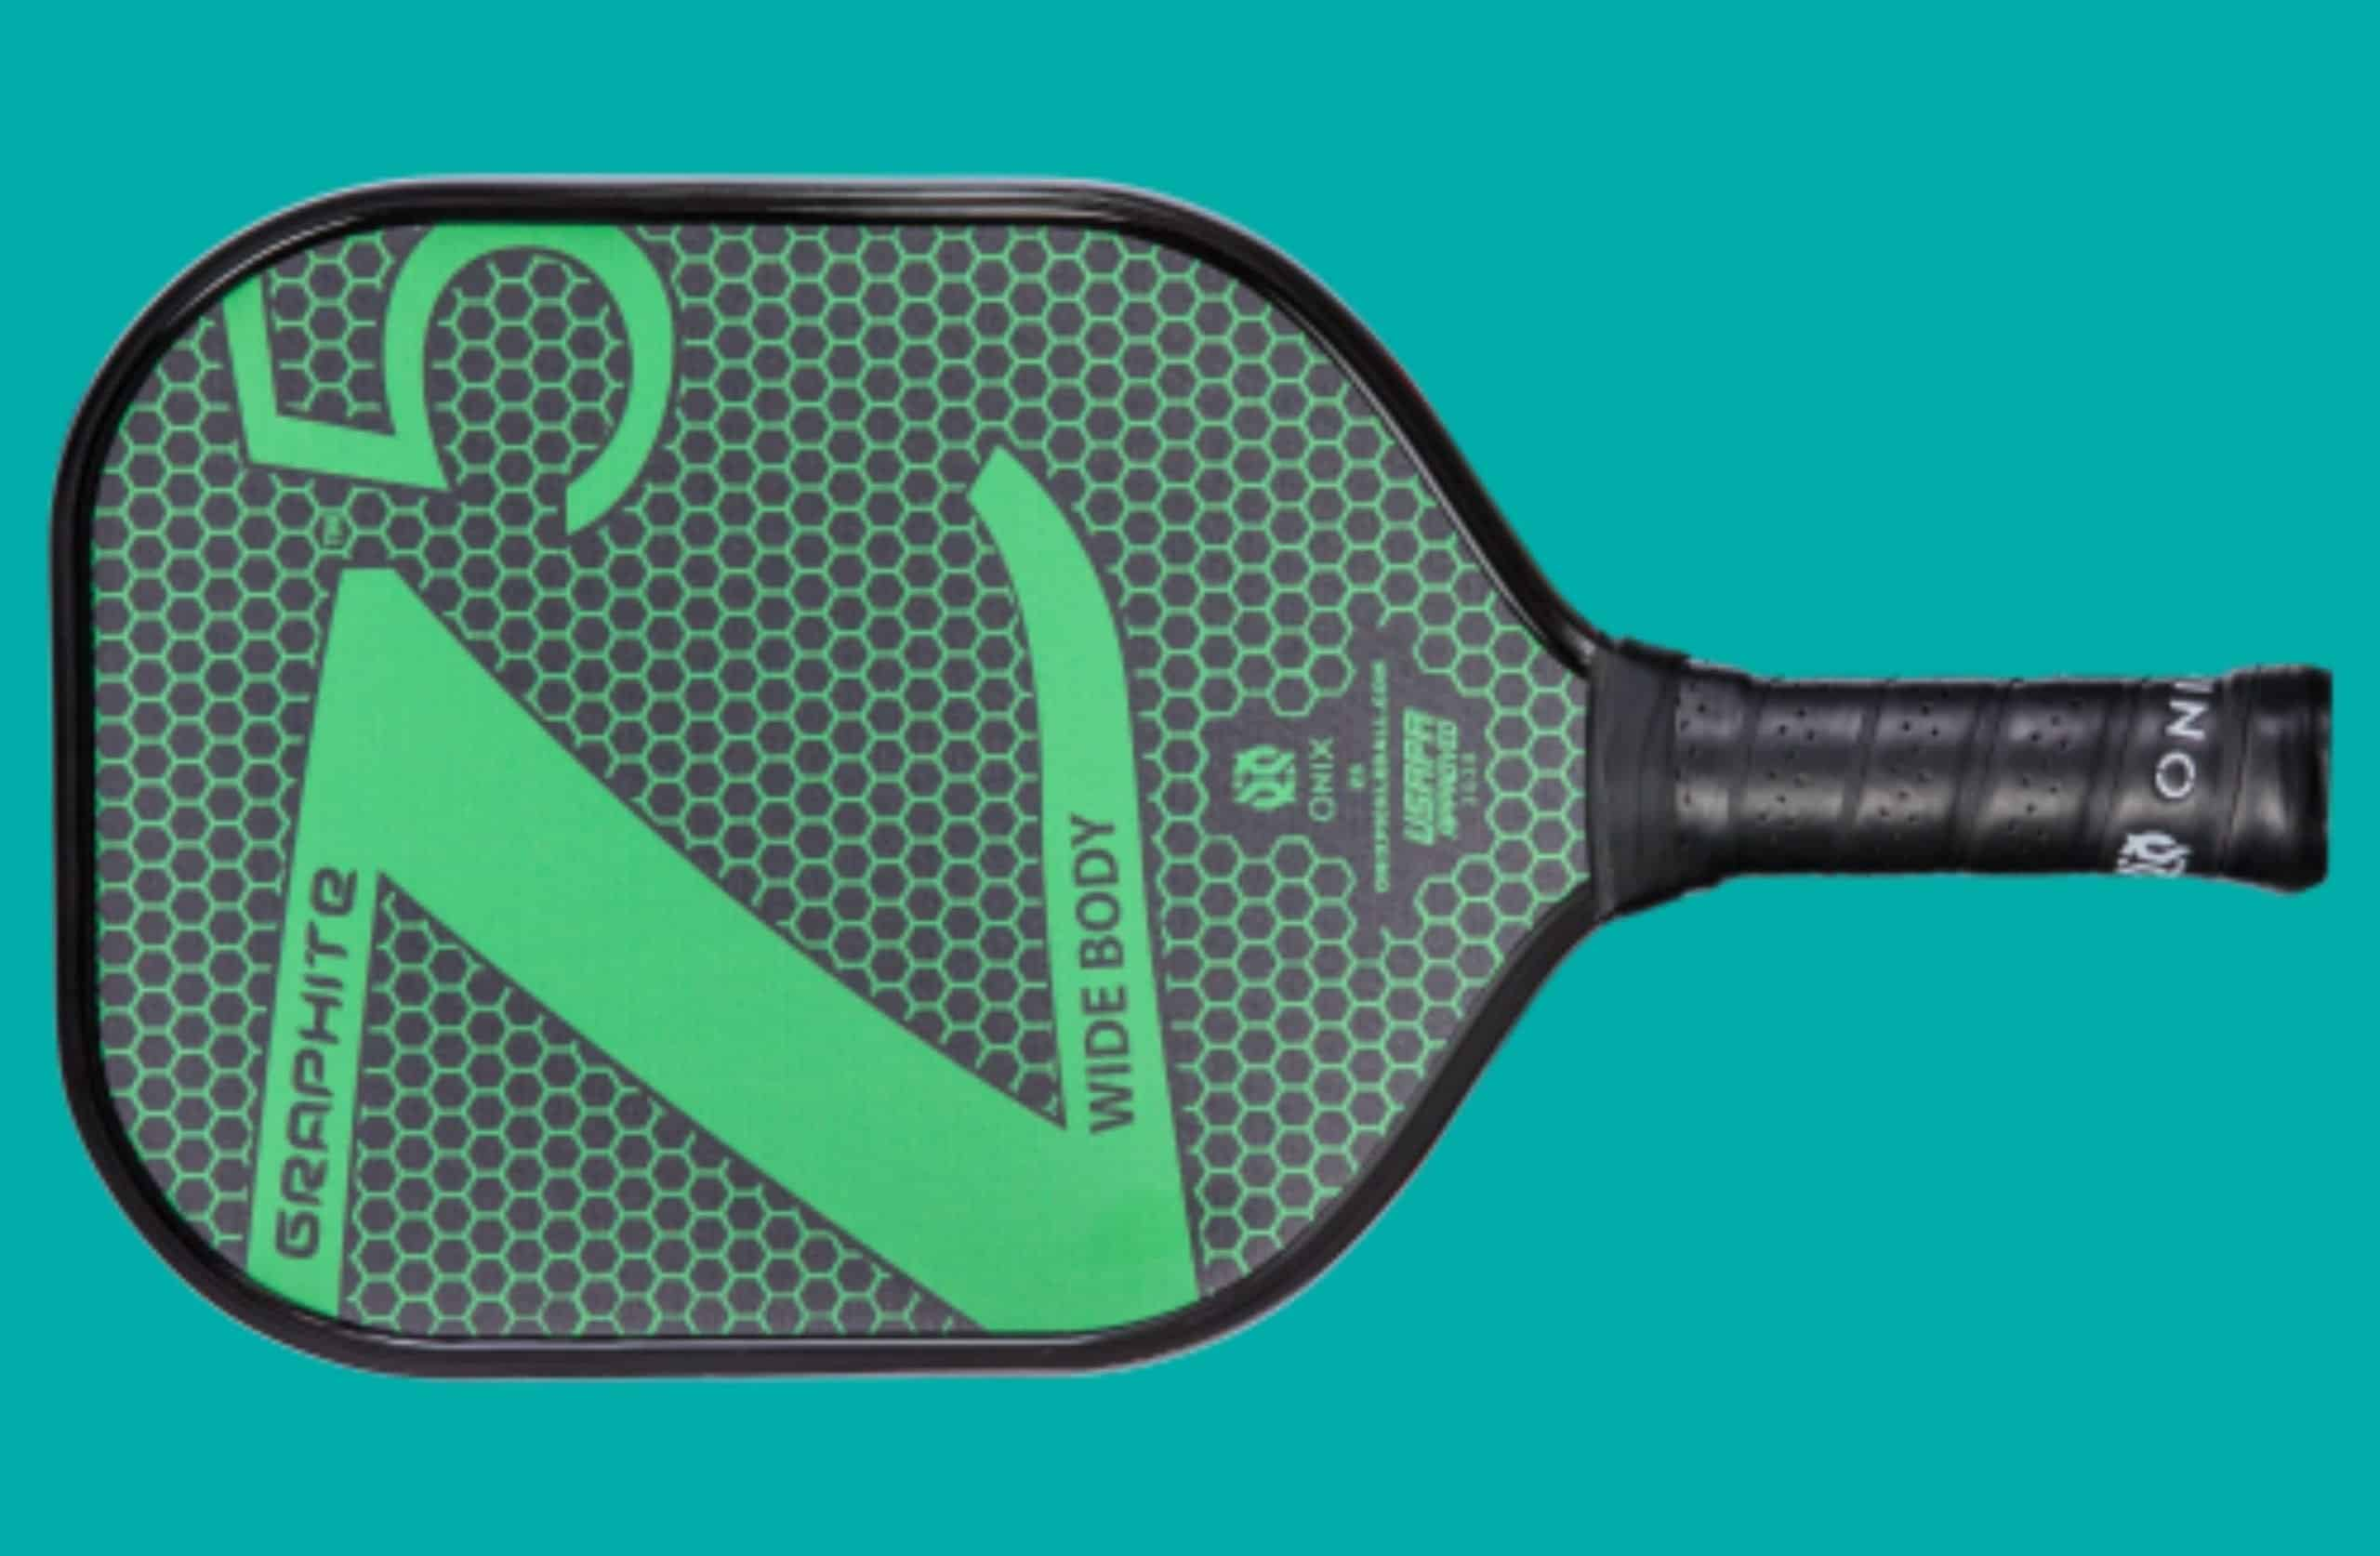 Onix Z5 Graphite Pickleball Paddle